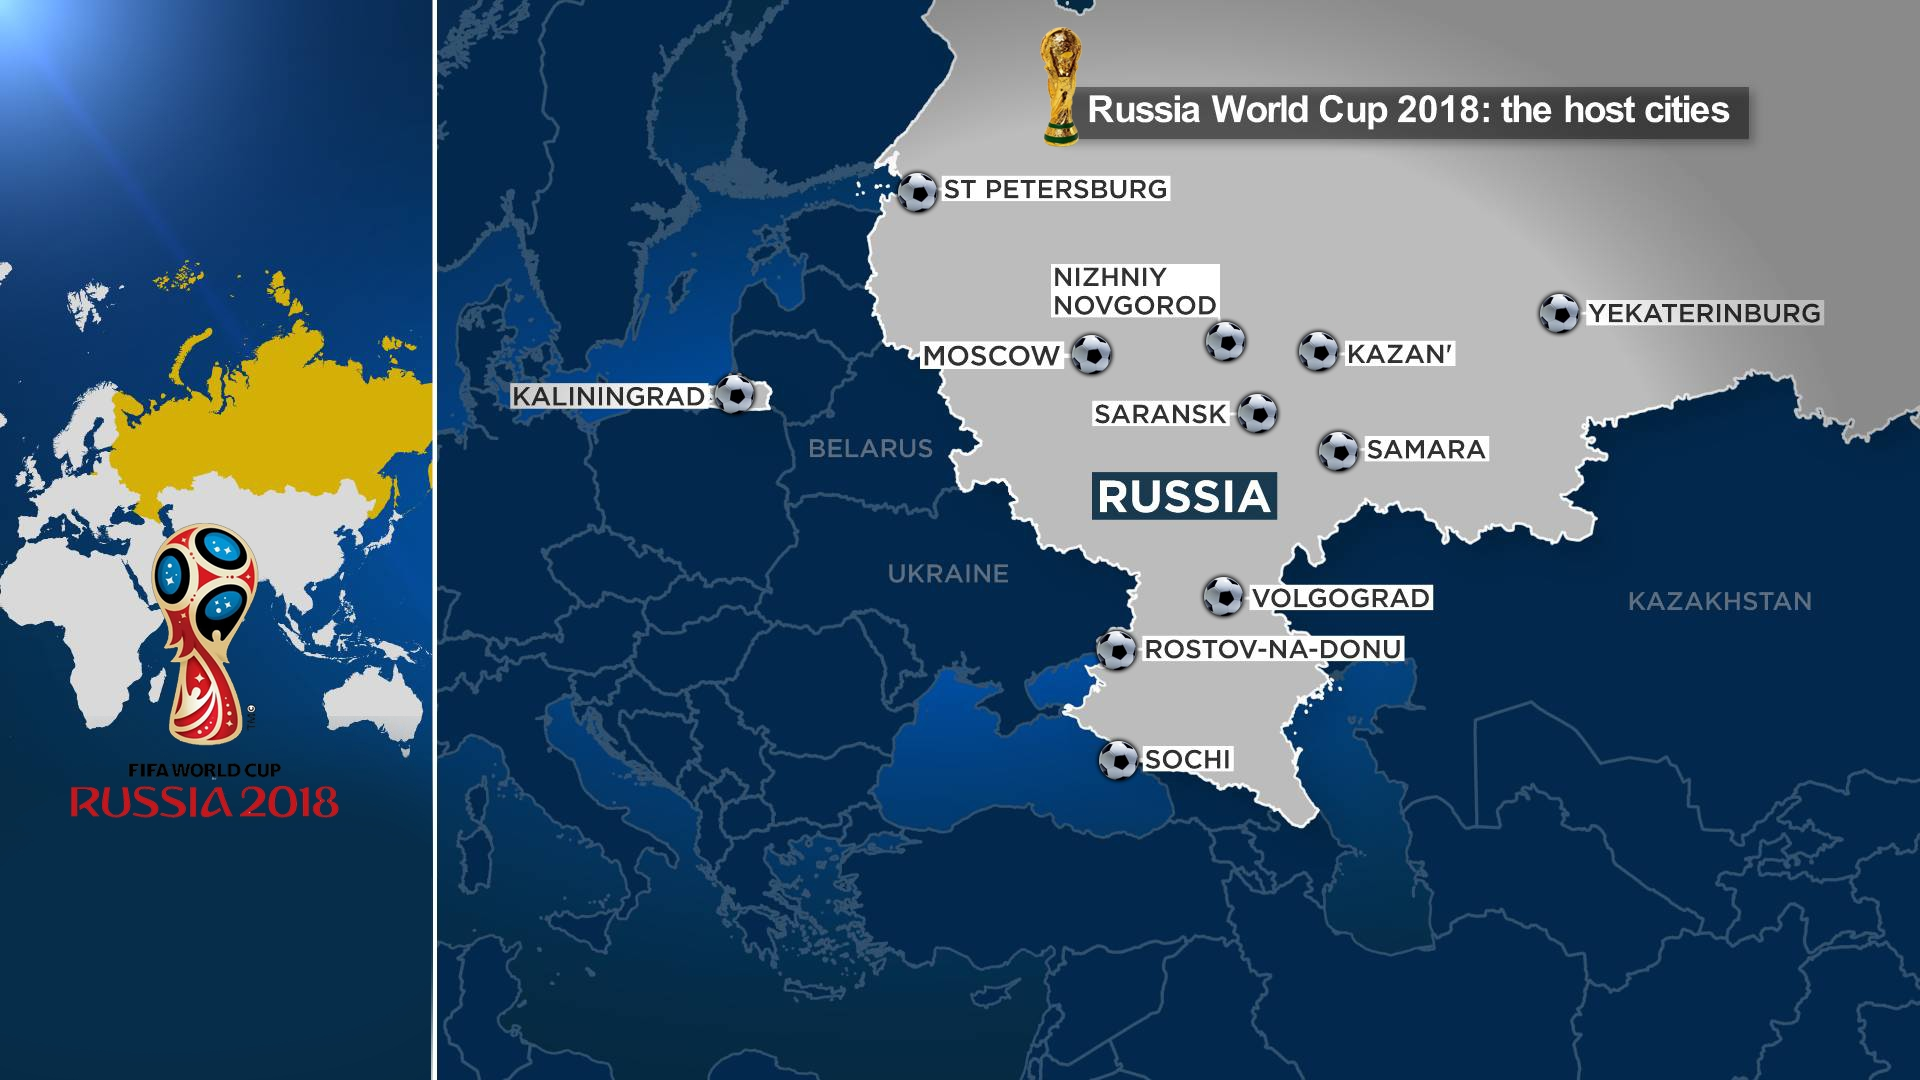 The 11 cities hosting Russia 2018 world cup